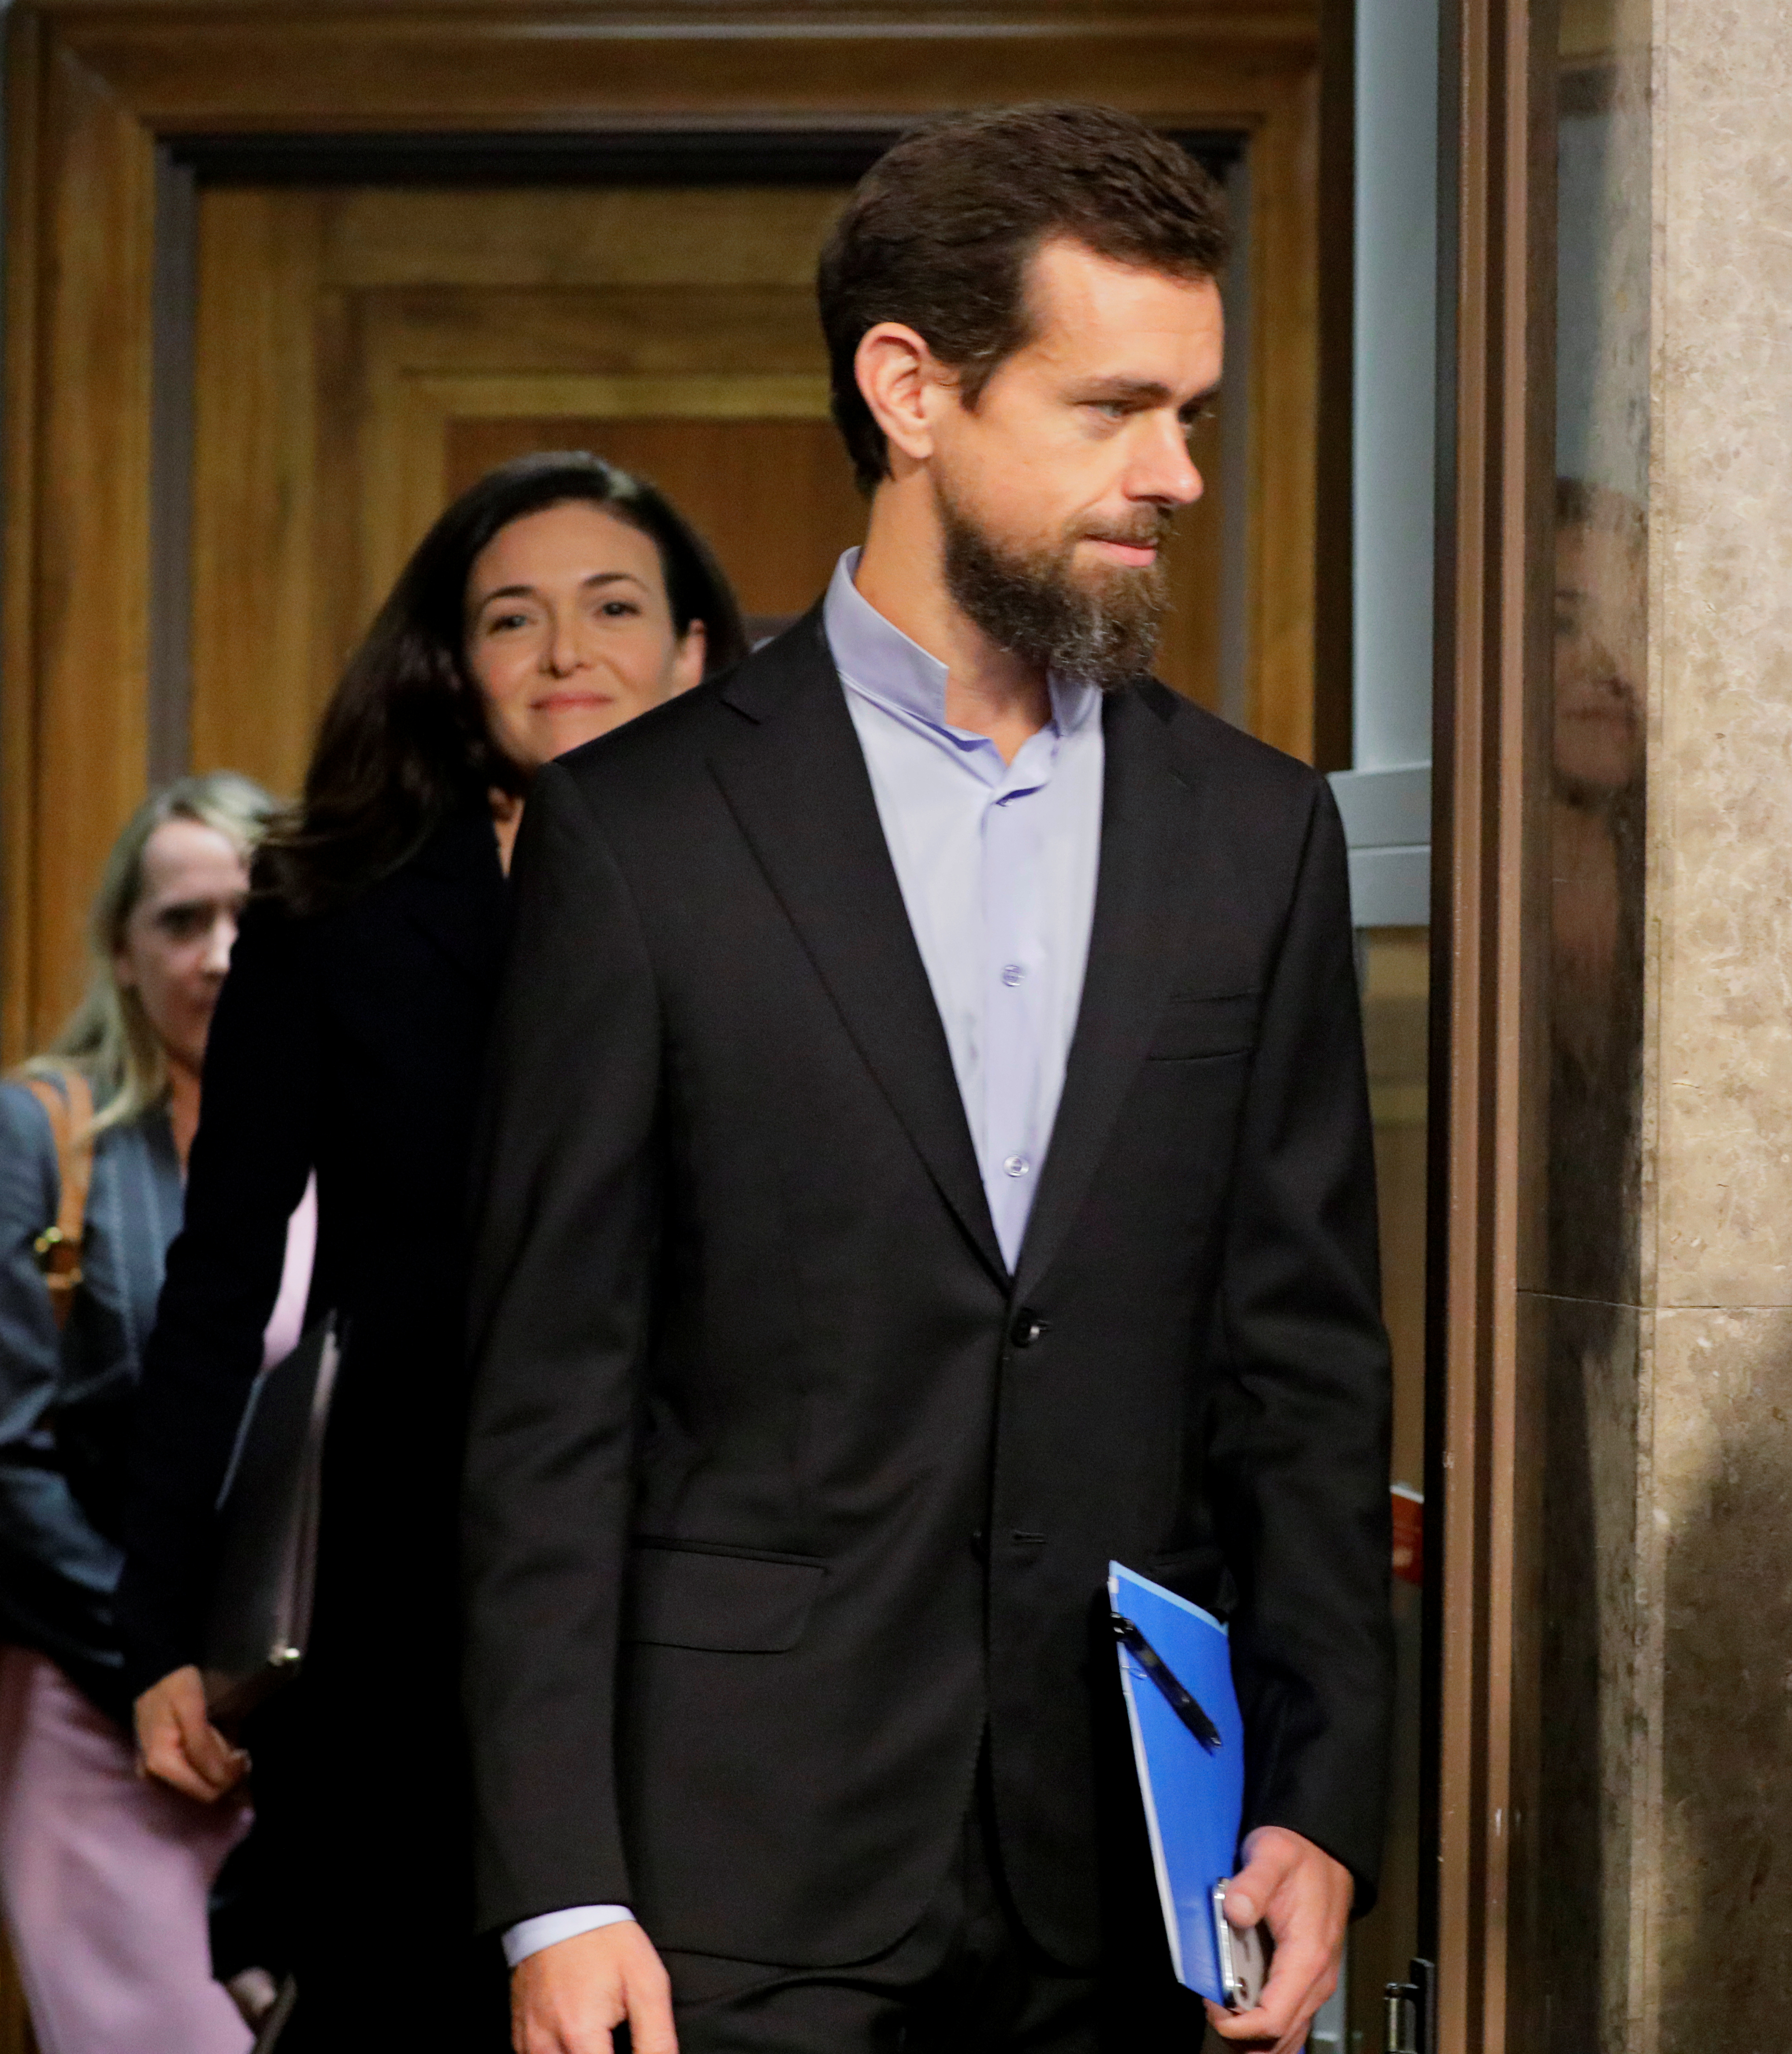 Twitter CEO Jack Dorsey and Facebook COO Sheryl Sandberg arrive to testify before a Senate Intelligence Committee hearing on foreign influence operations on social media platforms on Capitol Hill in Washington, U.S., September 5, 2018.